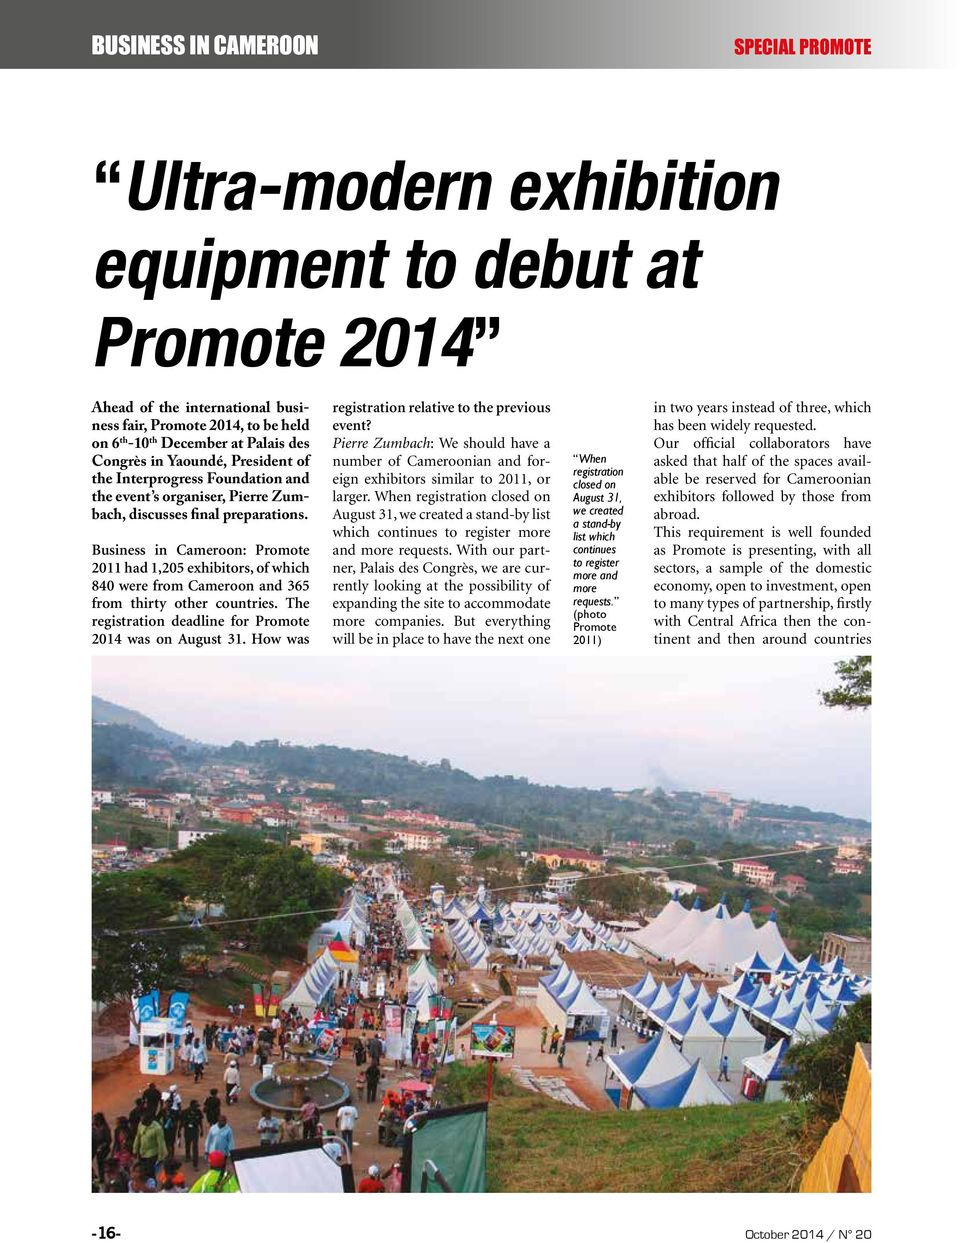 Business in Cameroon: Promote 2011 had 1,205 exhibitors, of which 840 were from Cameroon and 365 from thirty other countries. The registration deadline for Promote 2014 was on August 31.